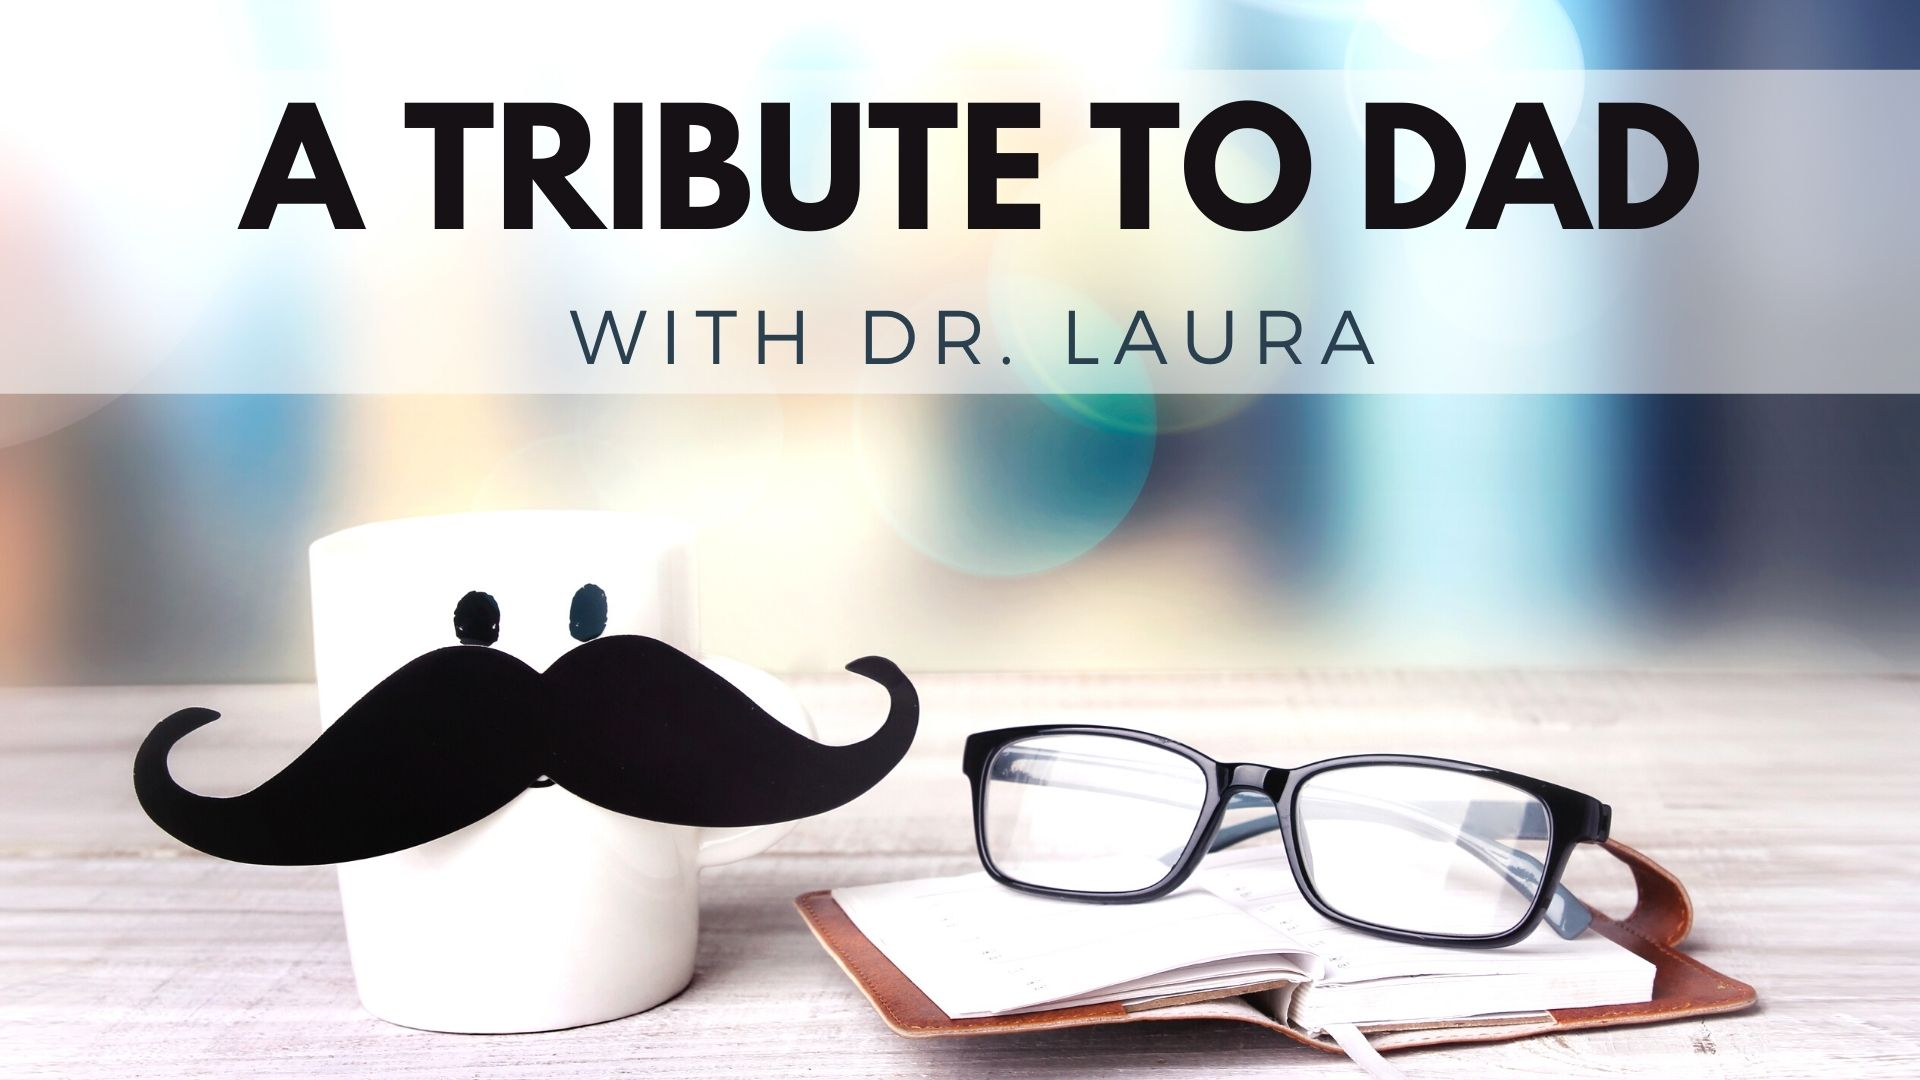 A Tribute to Dad with Dr. Laura